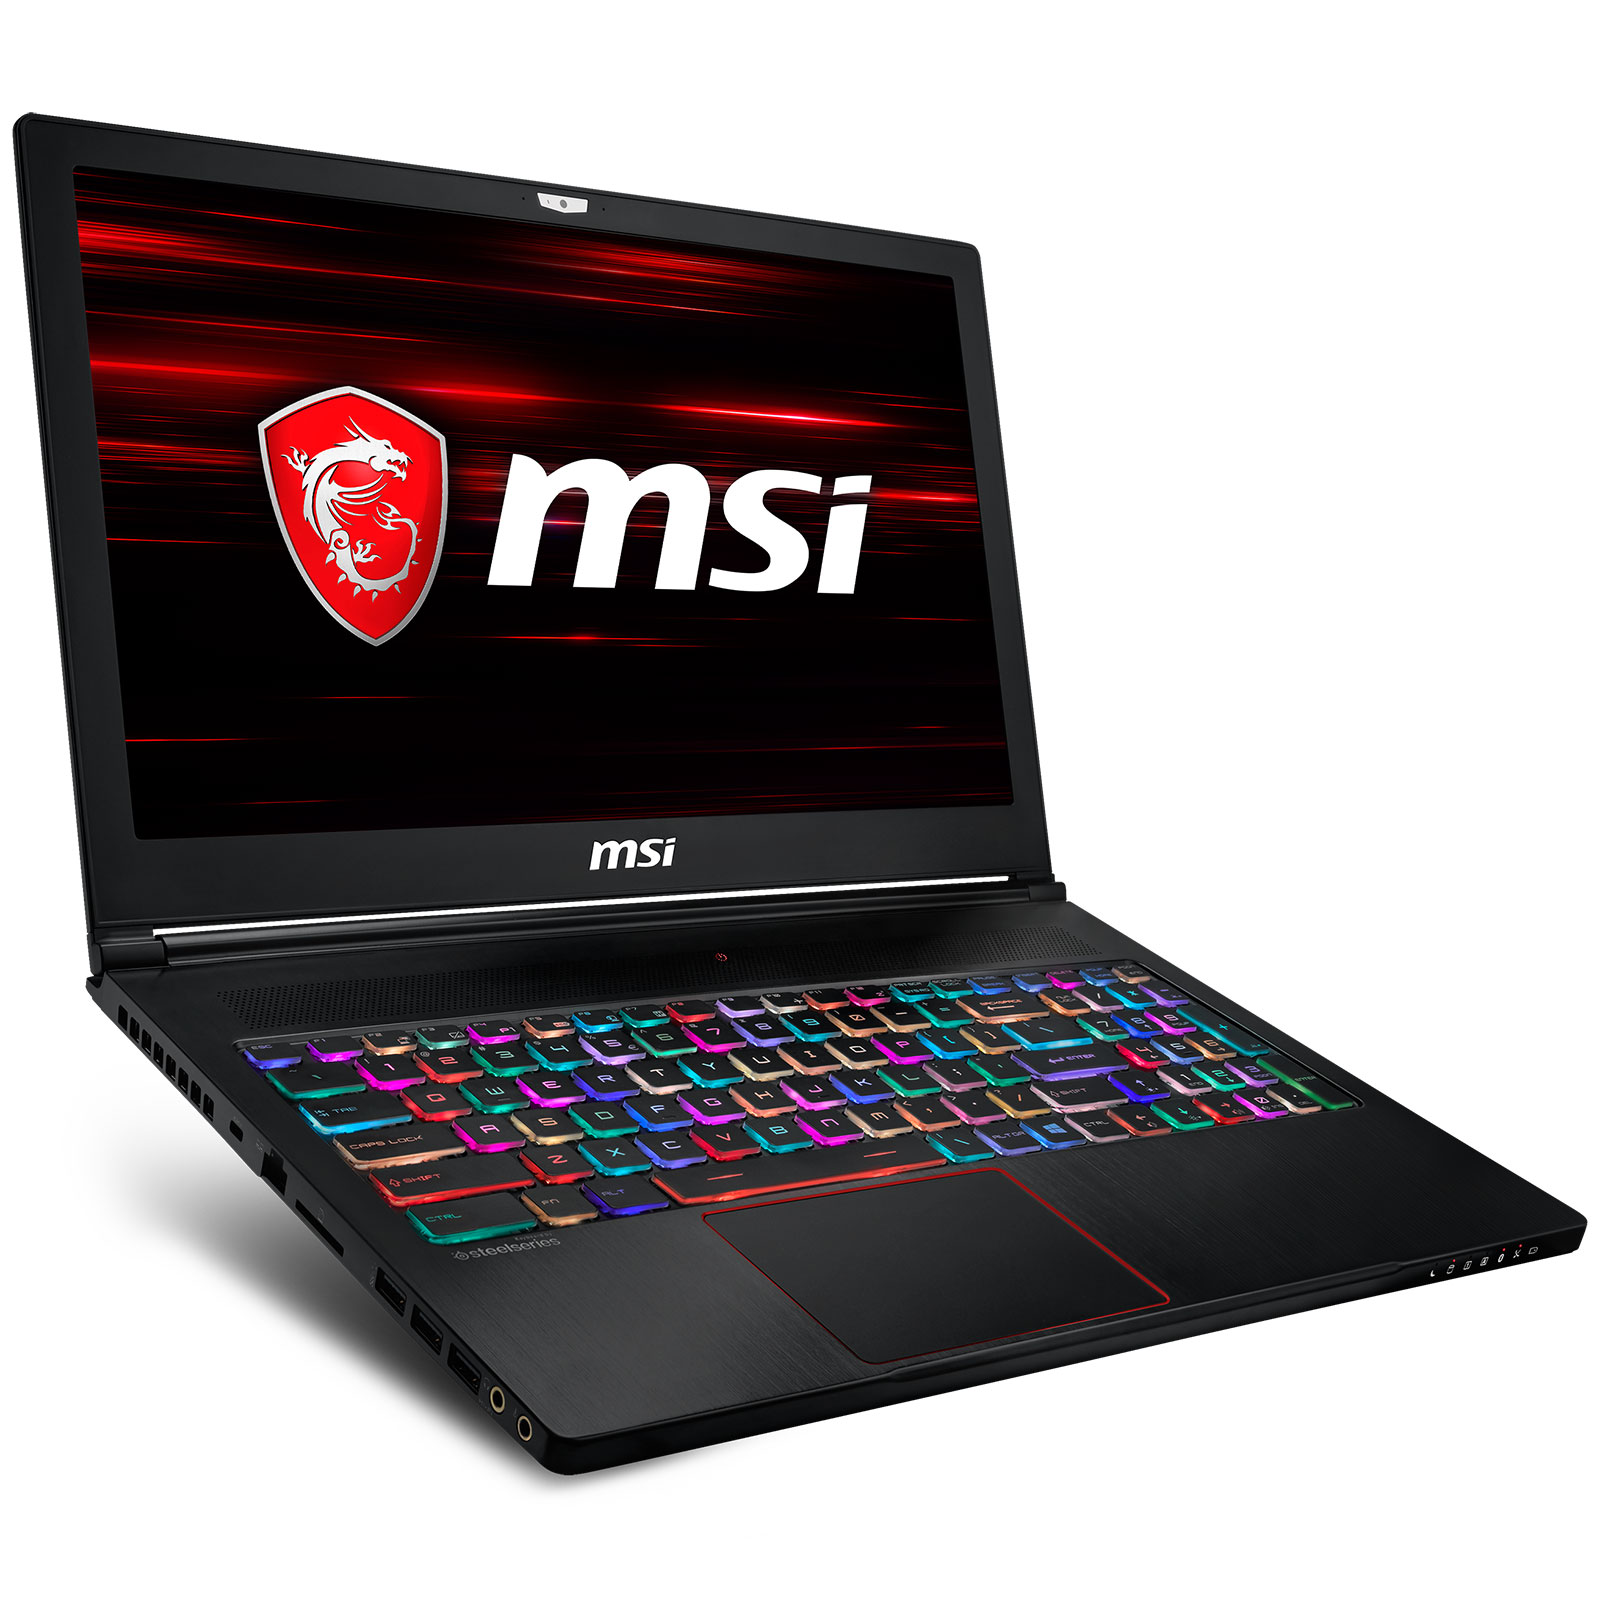 "PC portable MSI GS63 8RE-056FR Stealth Intel Core i7-8750H 8 Go SSD 256 Go + HDD 1 To 15.6"" LED Full HD 120 Hz NVIDIA GeForce GTX 1060 6 Go Wi-Fi AC/Bluetooth Webcam Windows 10 Famille 64 bits (garantie constructeur 2 ans)"